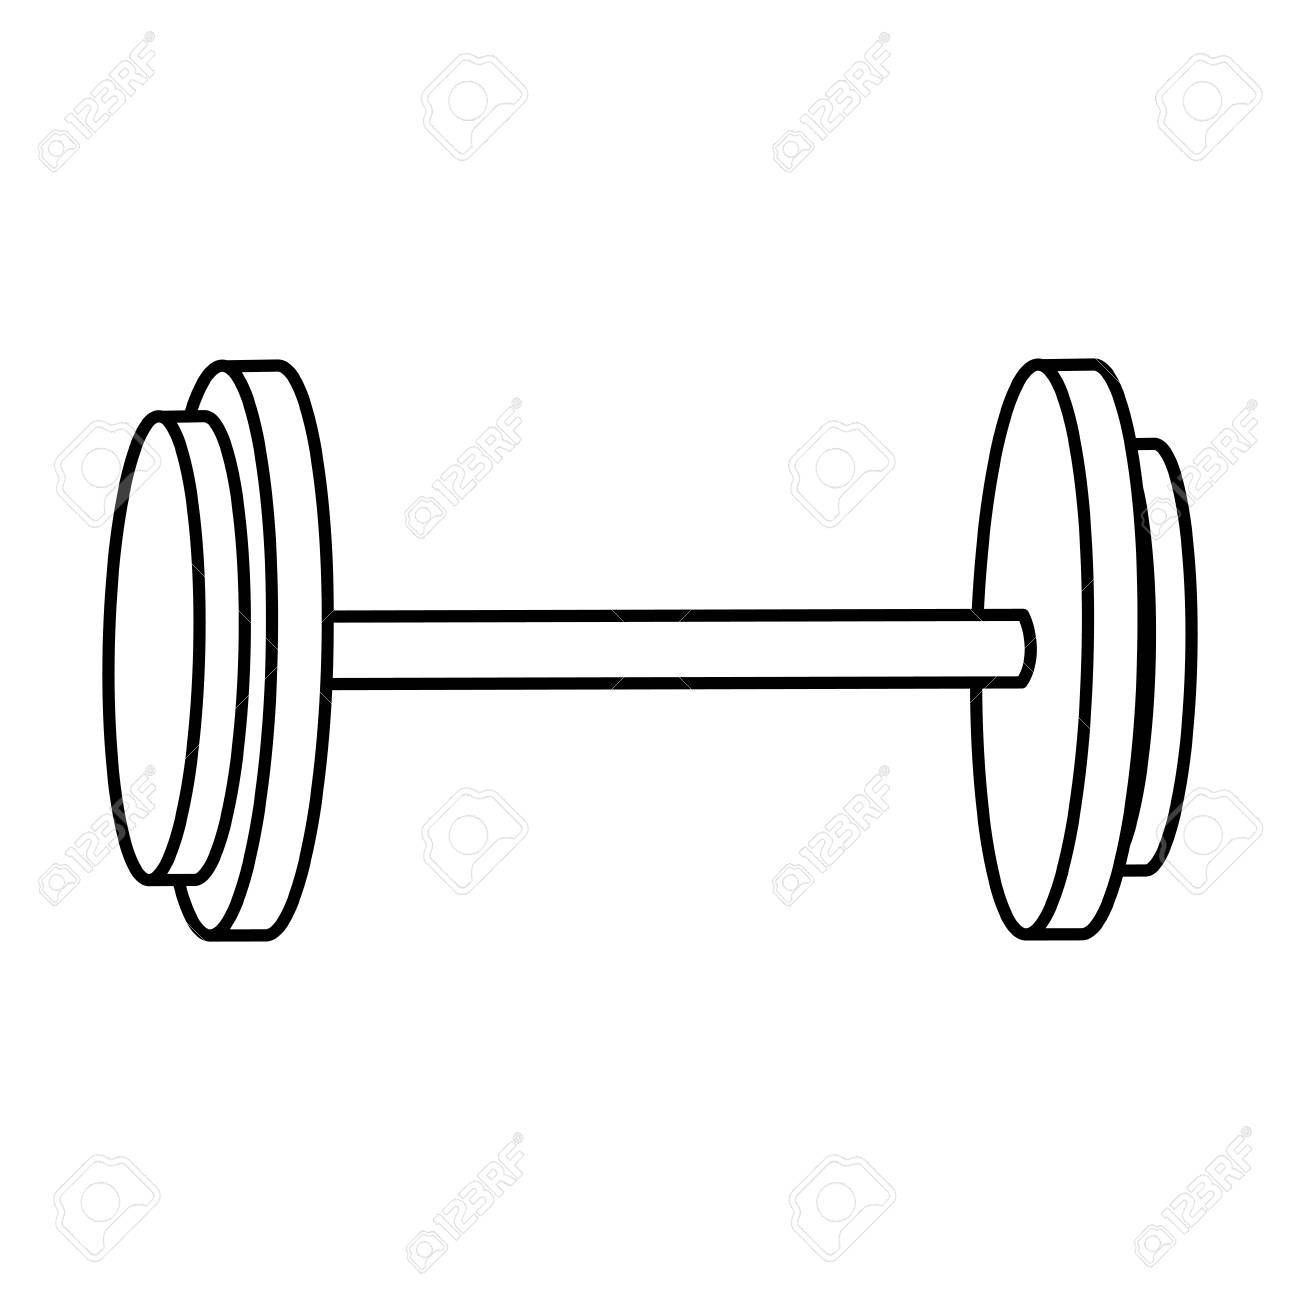 1300x1300 Dumbbell Weight Gym Equipment Image Line Vector Illustration